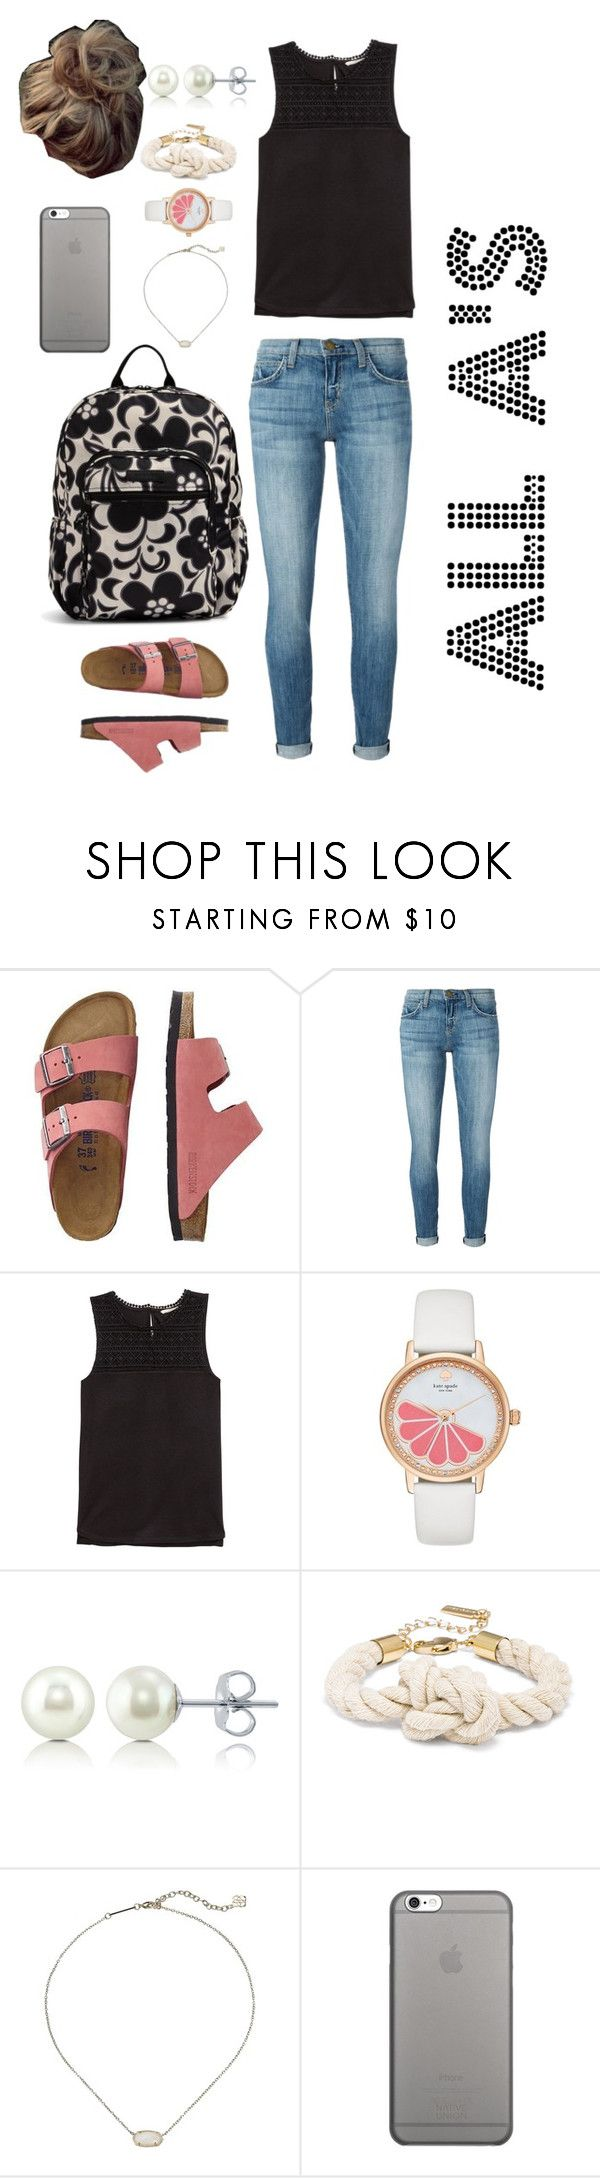 """""""All A's for Amazing"""" by mirandamf on Polyvore featuring TravelSmith, Current/Elliott, H&M, Kate Spade, BERRICLE, Kendra Scott, Native Union and Vera Bradley"""